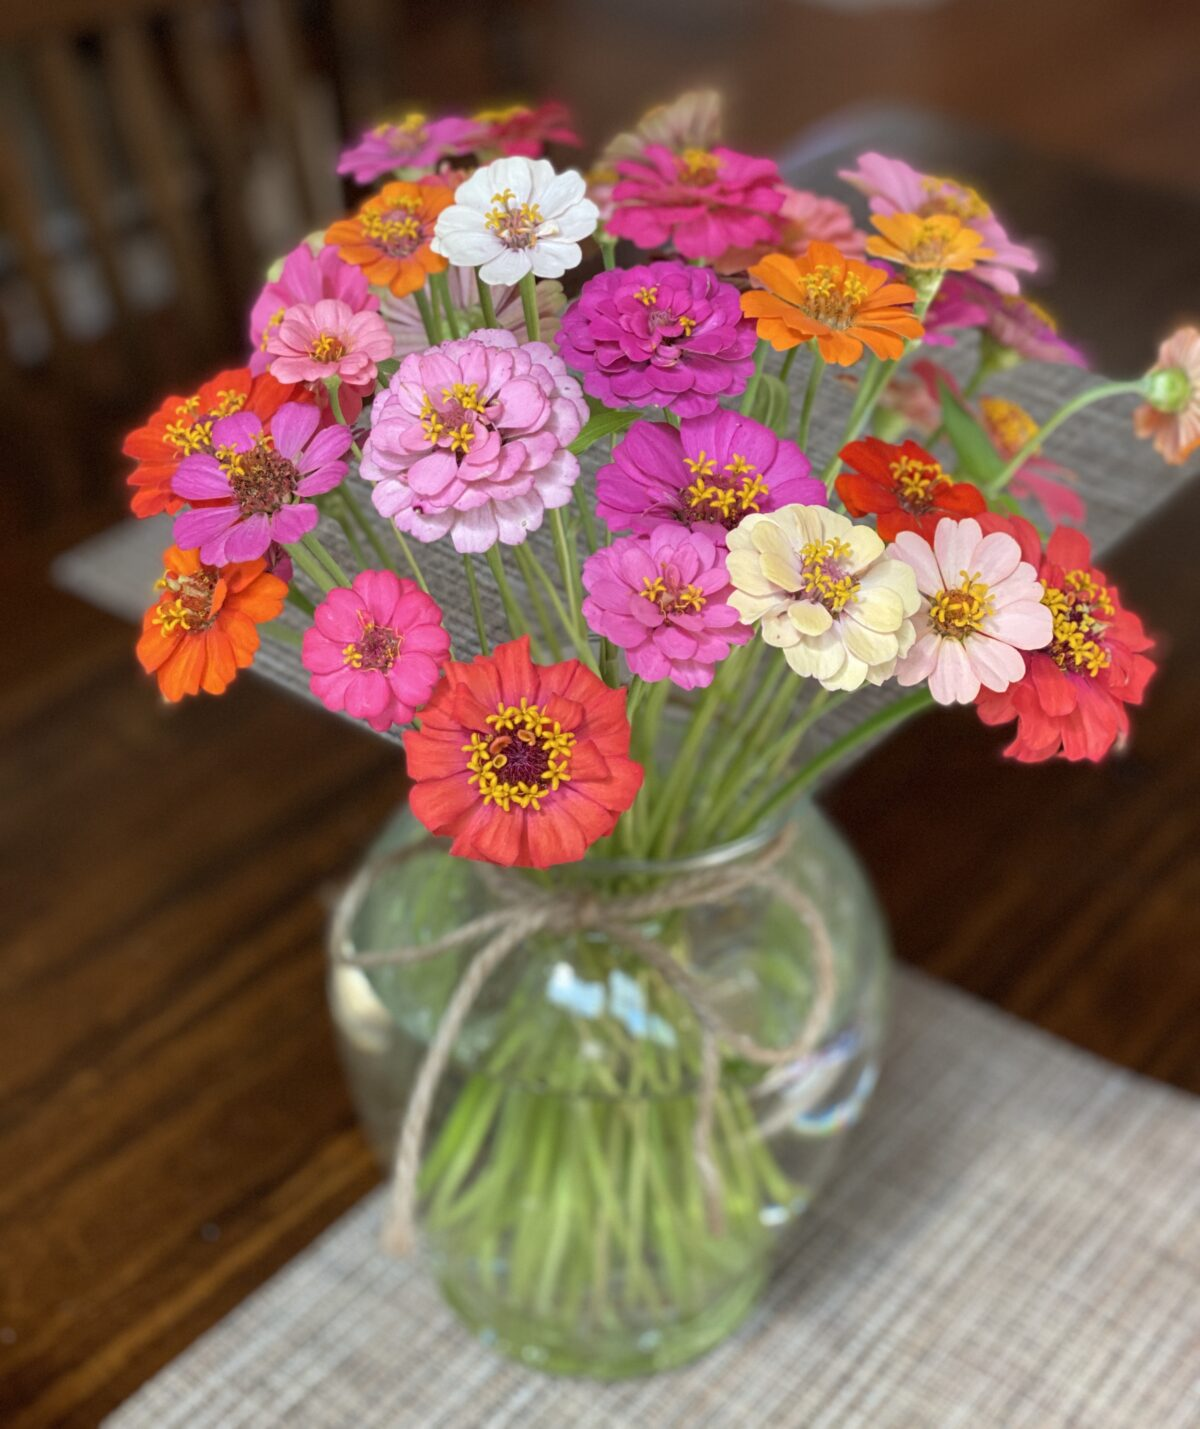 How To Arrange Zinnias Or Any Fresh Cut Flowers In A Vase And Other Ideas